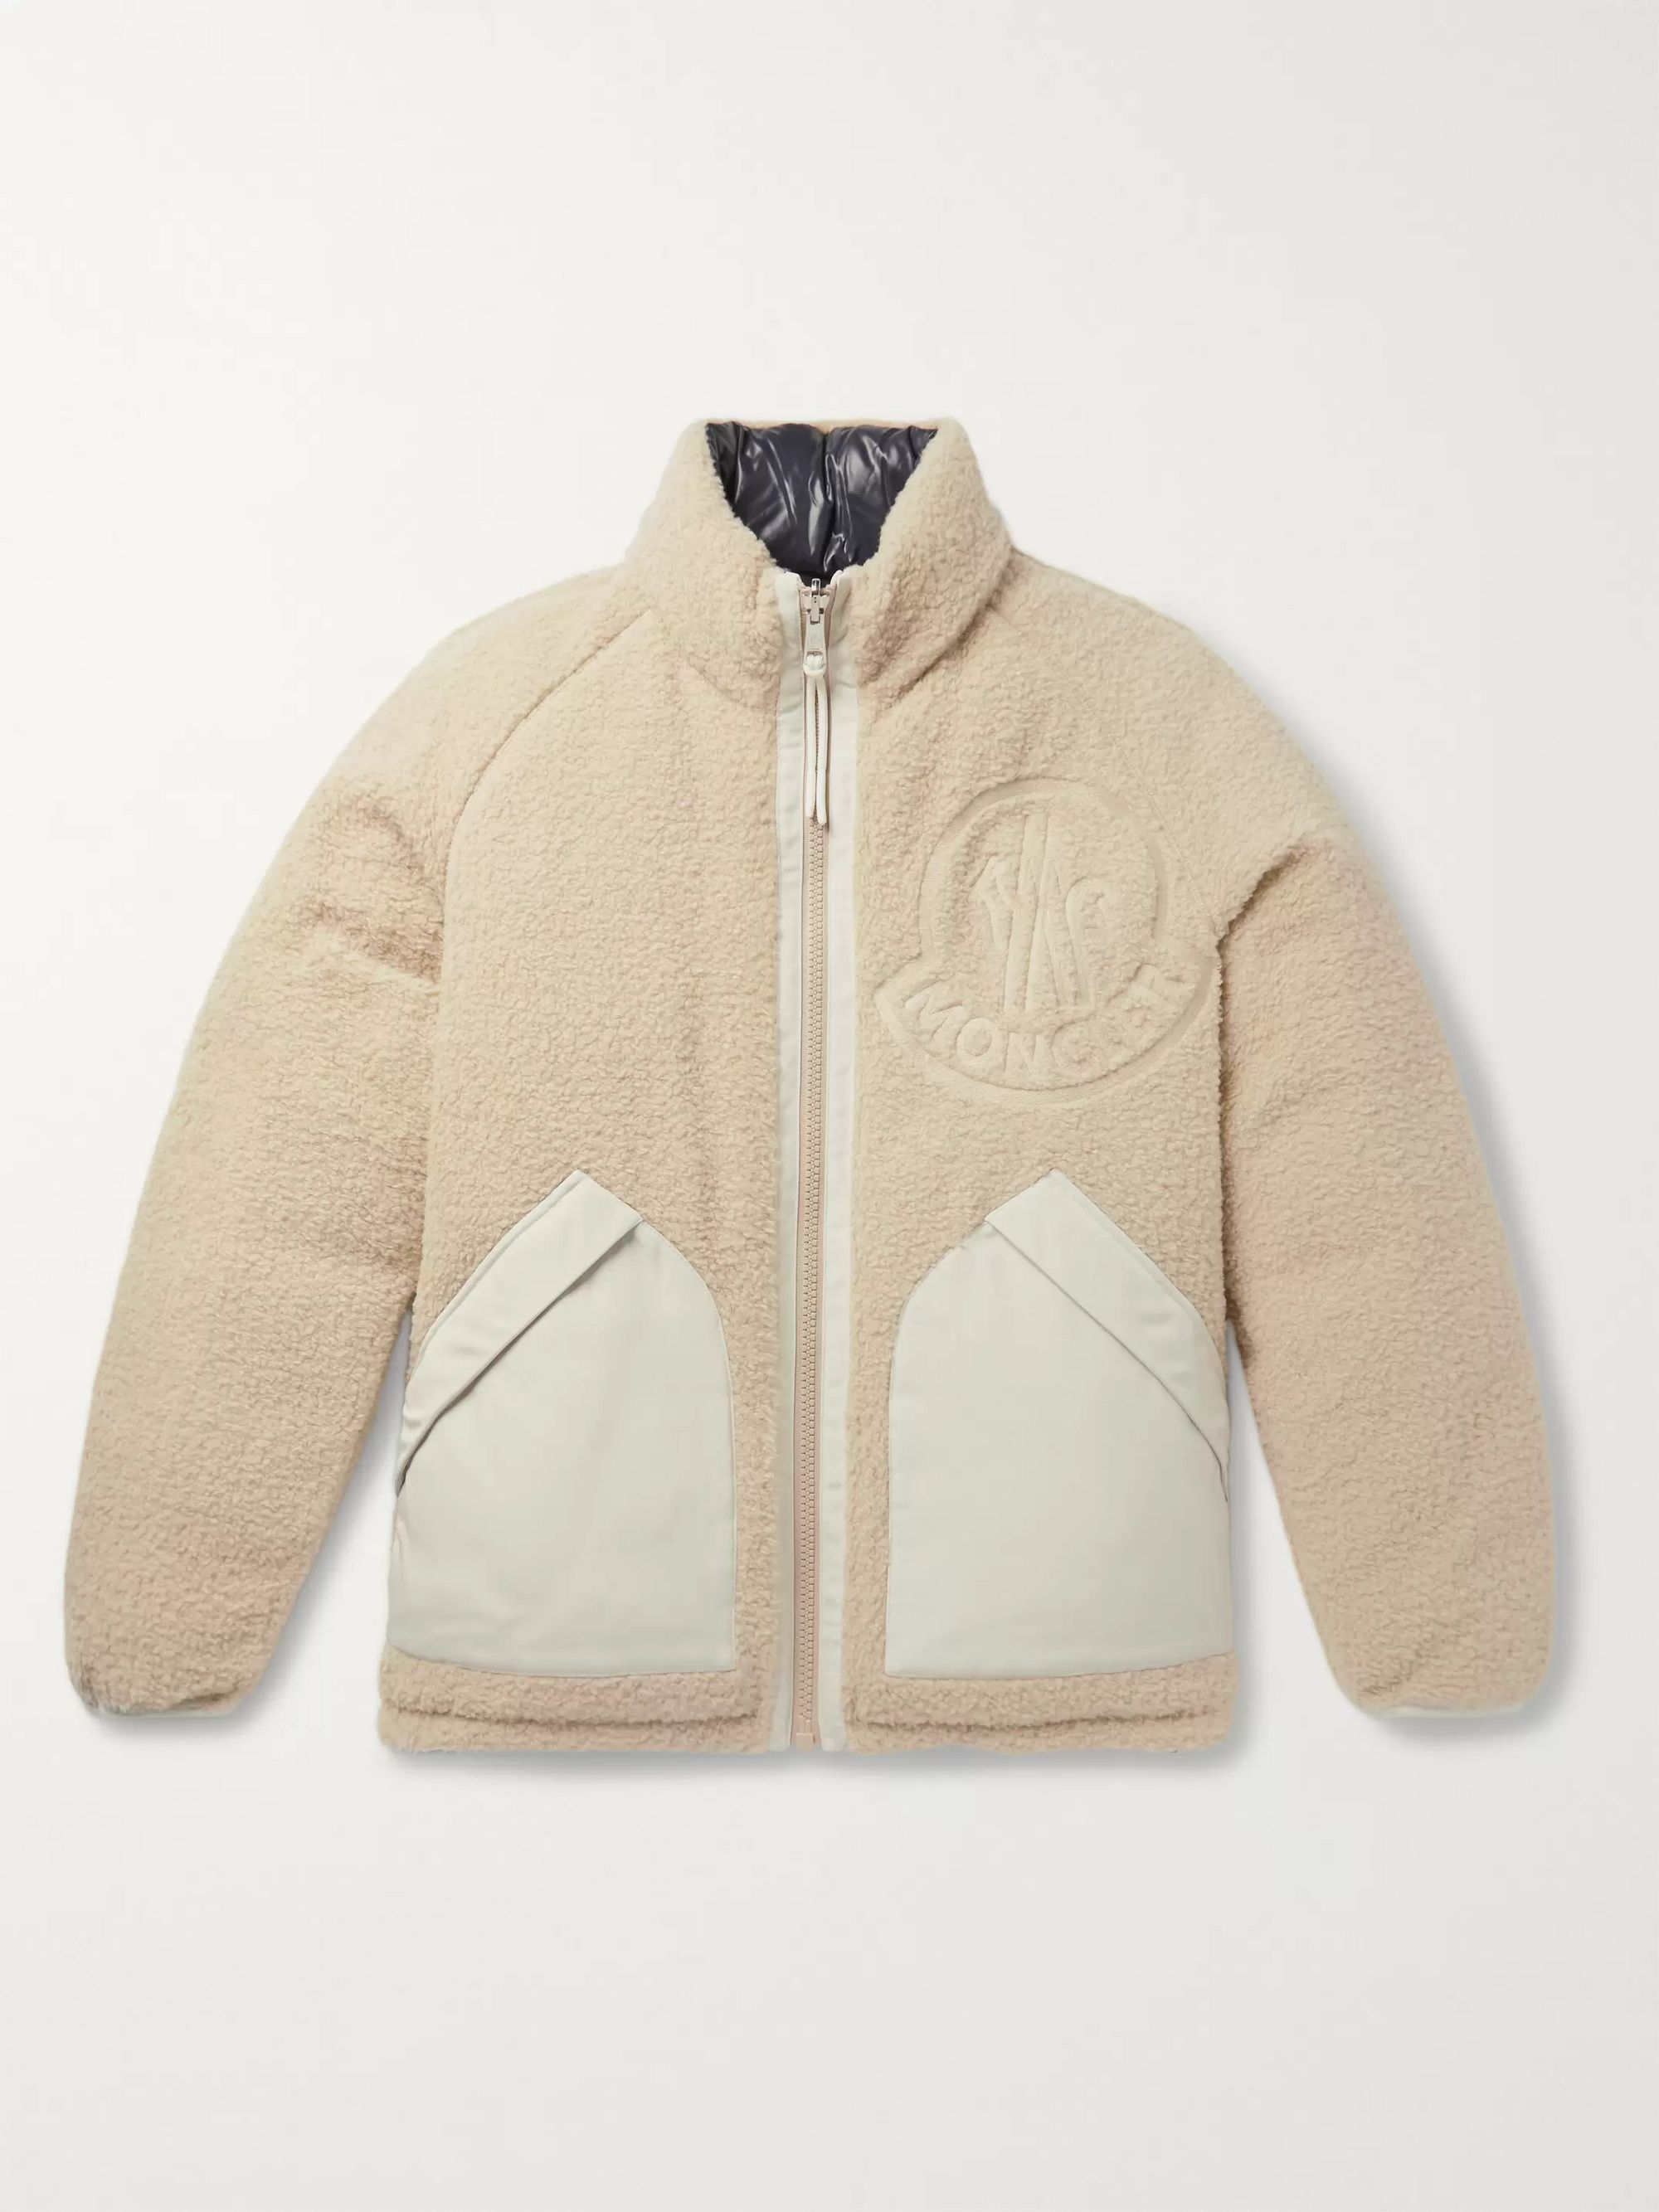 Moncler Genius 2 Moncler 1952 Reversible Fleece and Quilted Shell Down Jacket